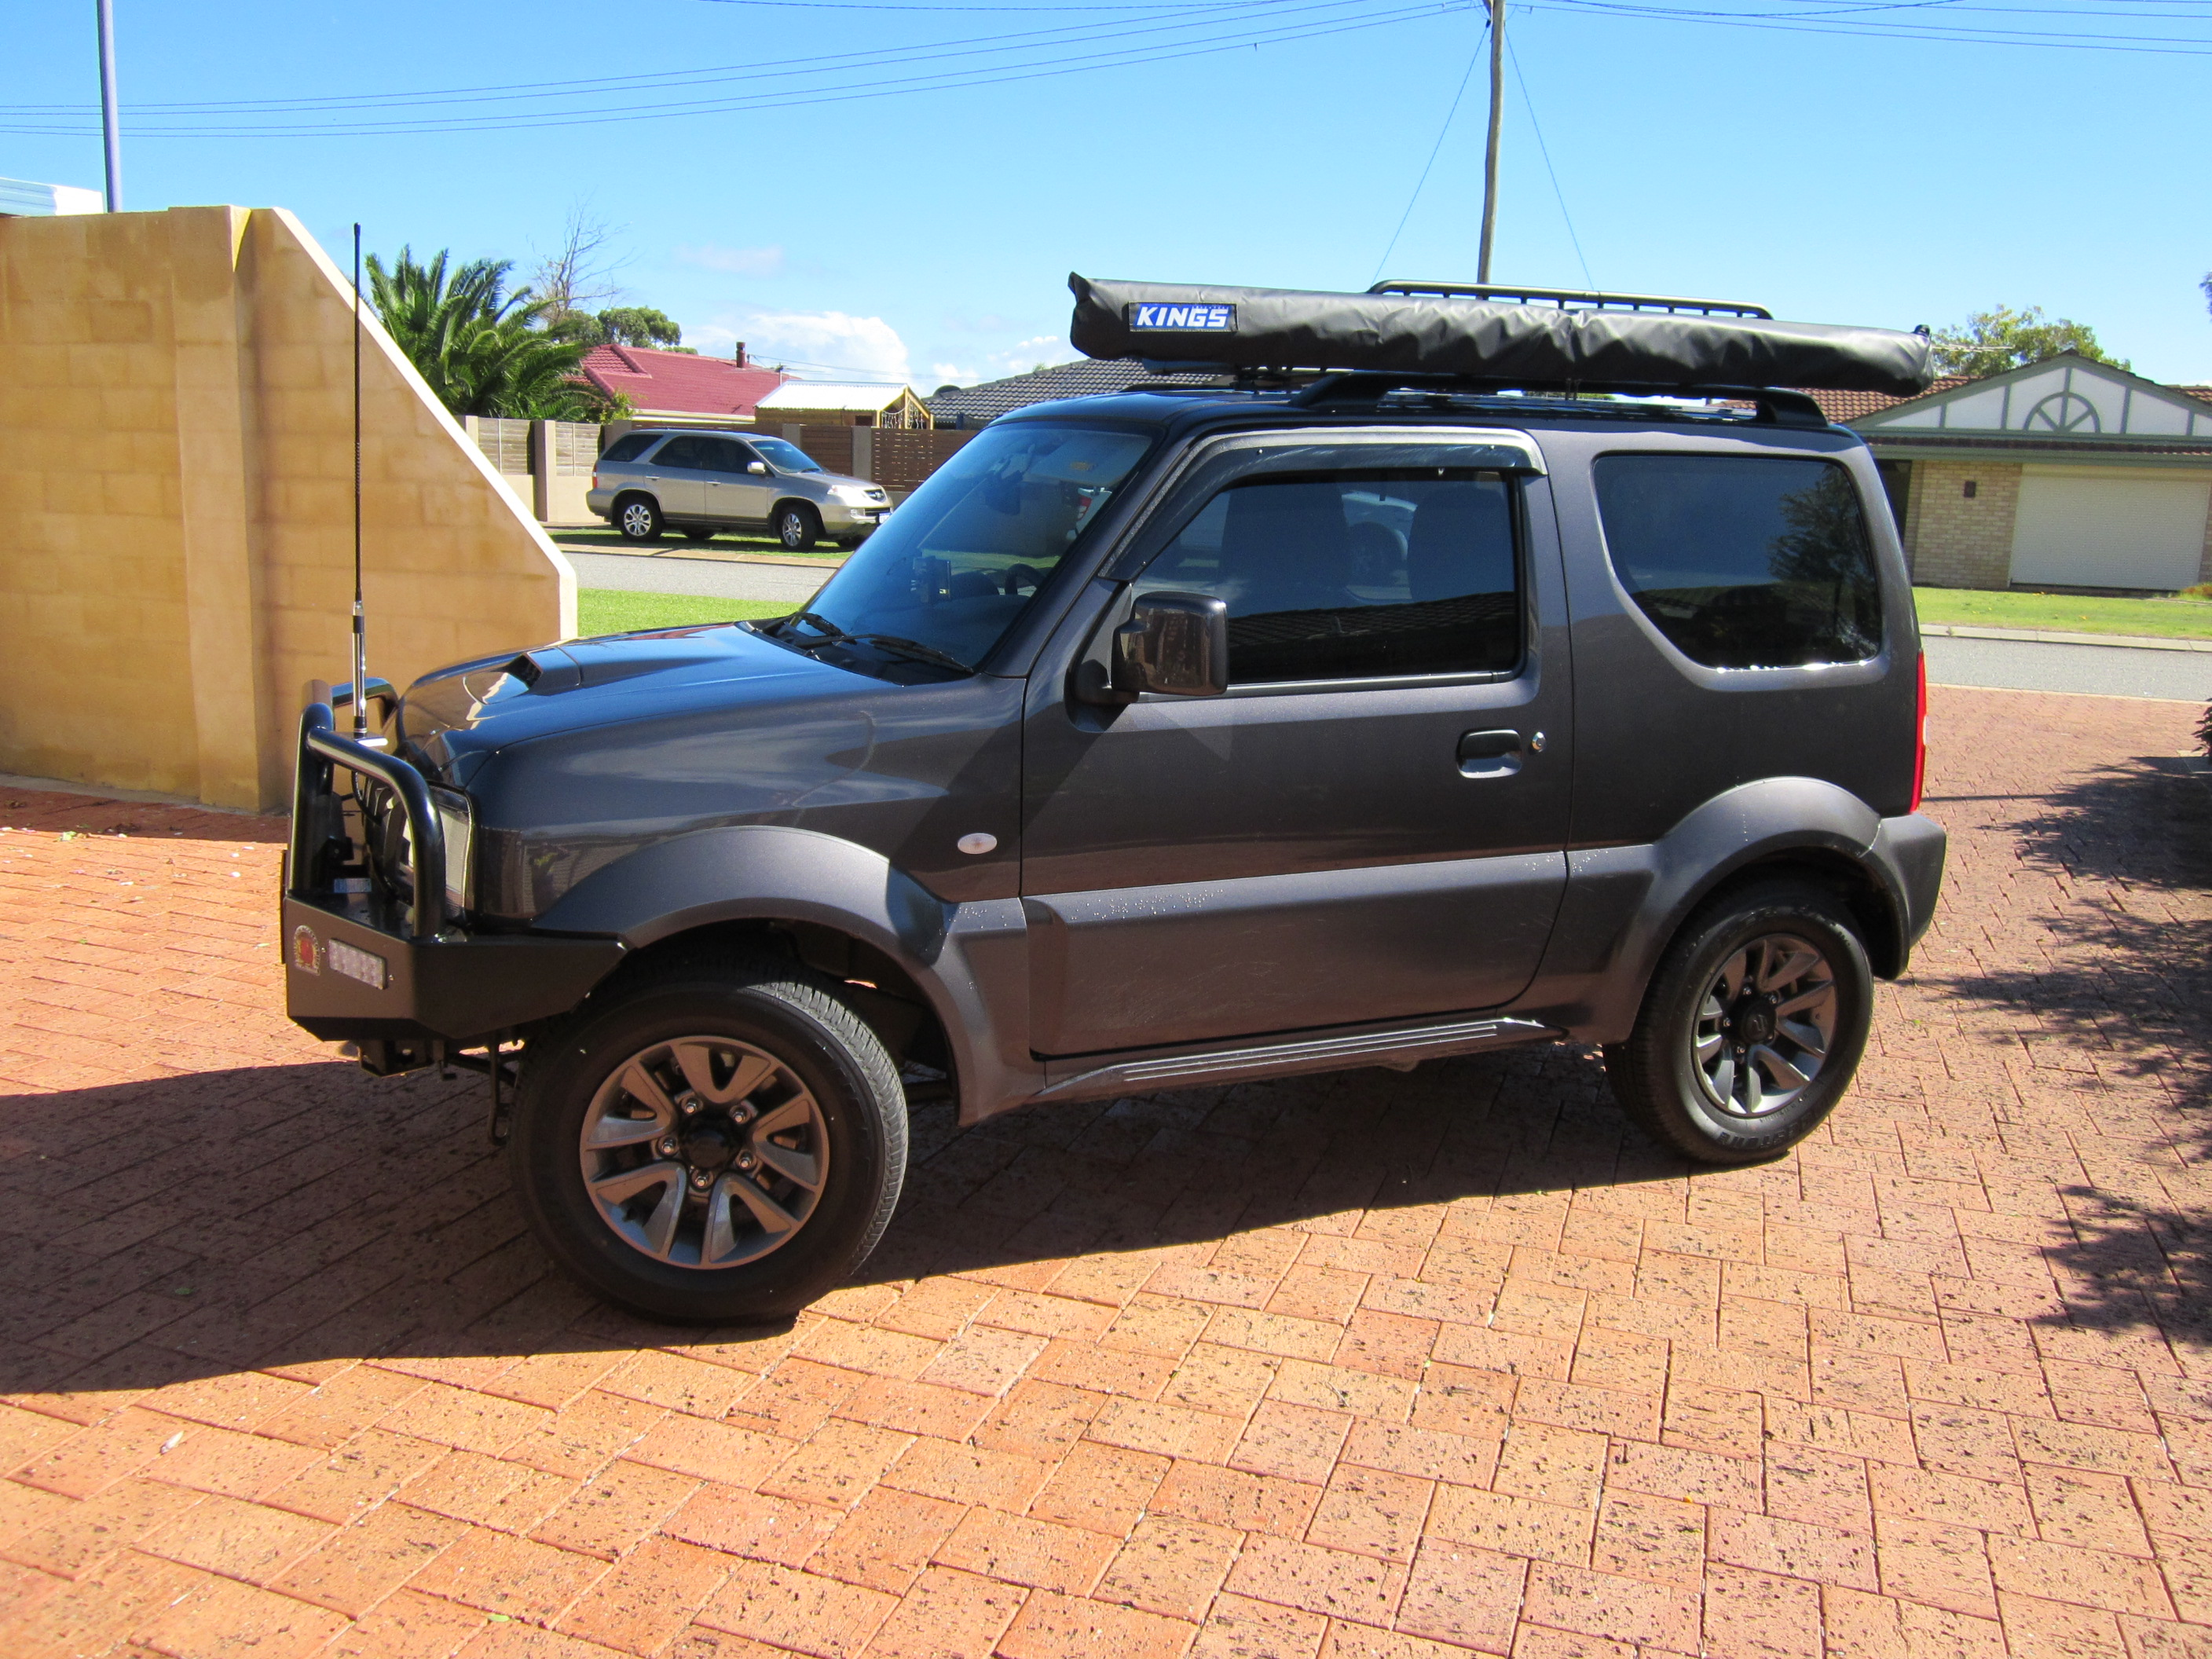 new suzuki jimny sierra to remain a hardcore ladder frame 4x4 photos caradvice. Black Bedroom Furniture Sets. Home Design Ideas